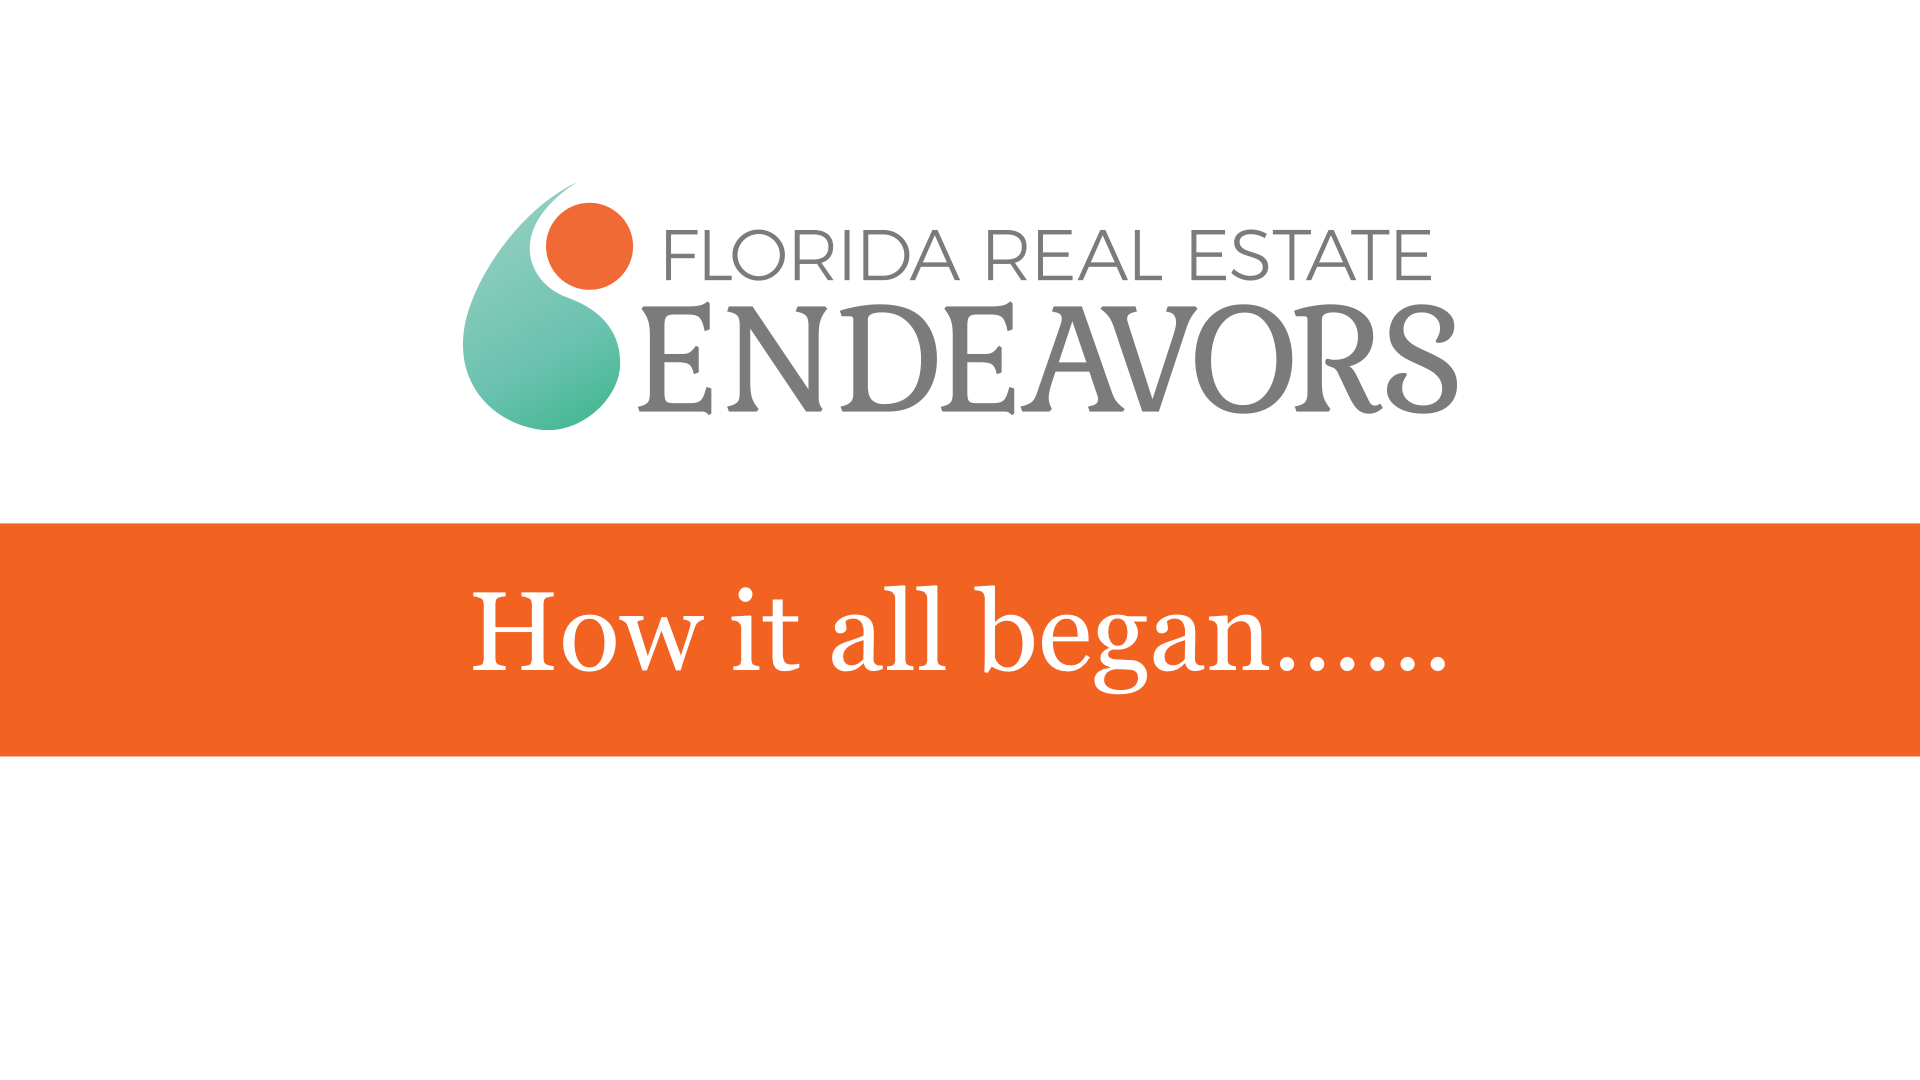 Florida Real Estate Endeavors Custom PowerPoint Template